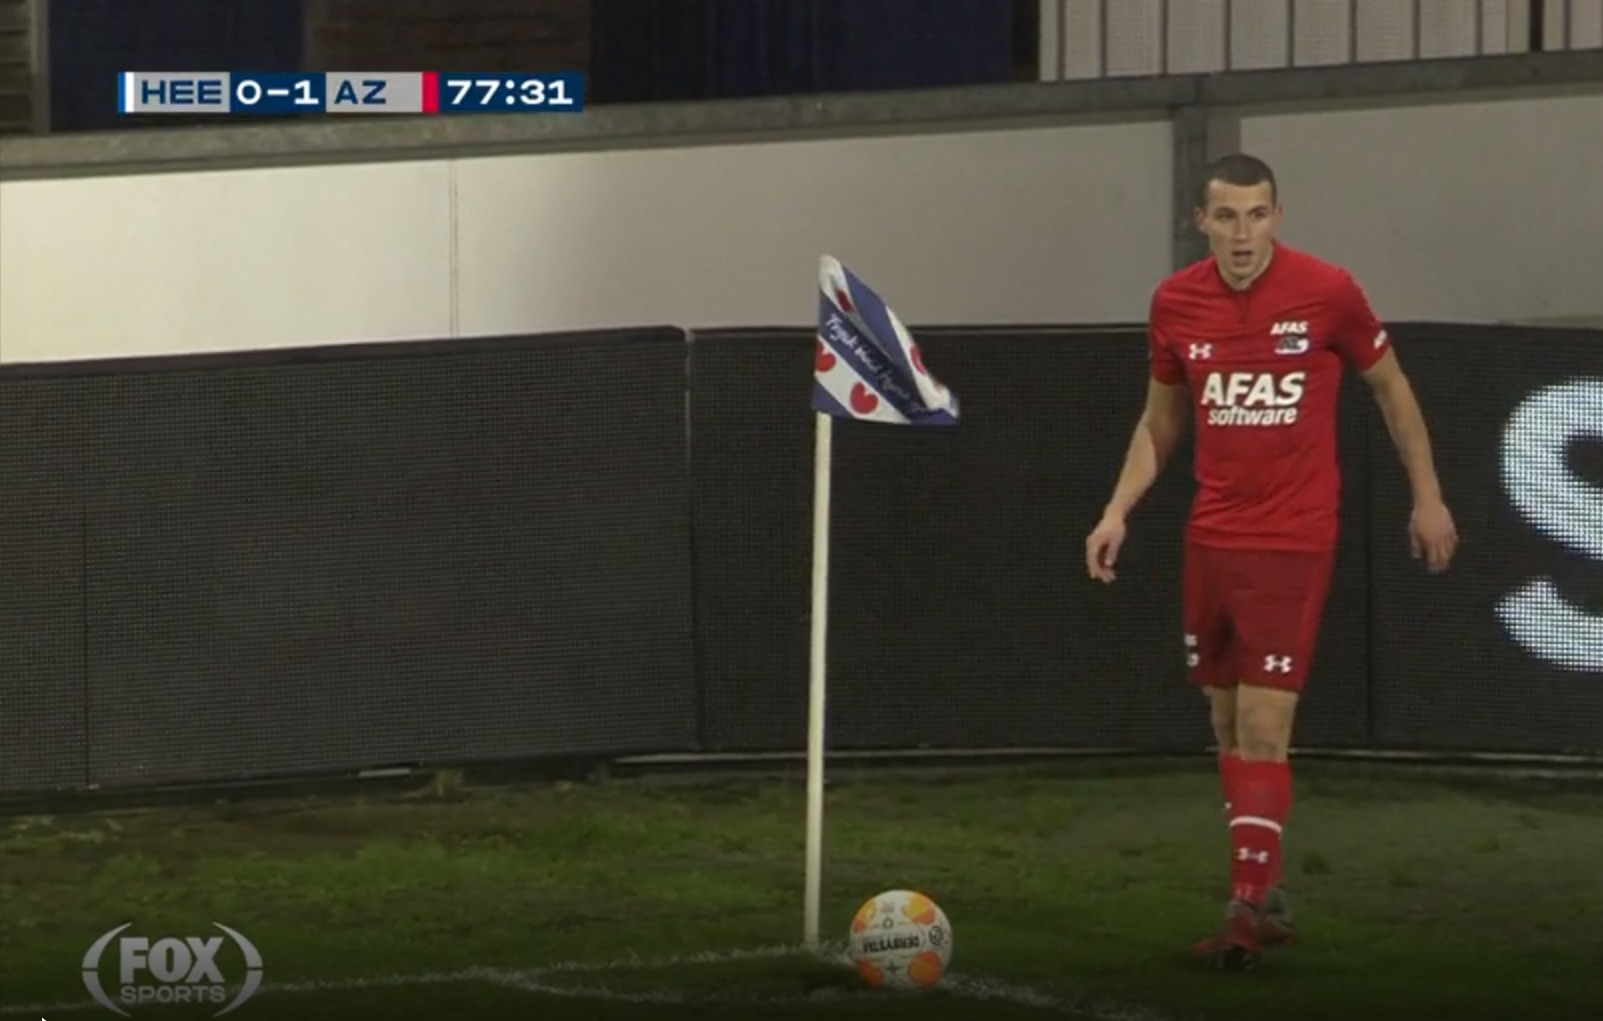 Idrissi scoring directly from a cornere kick